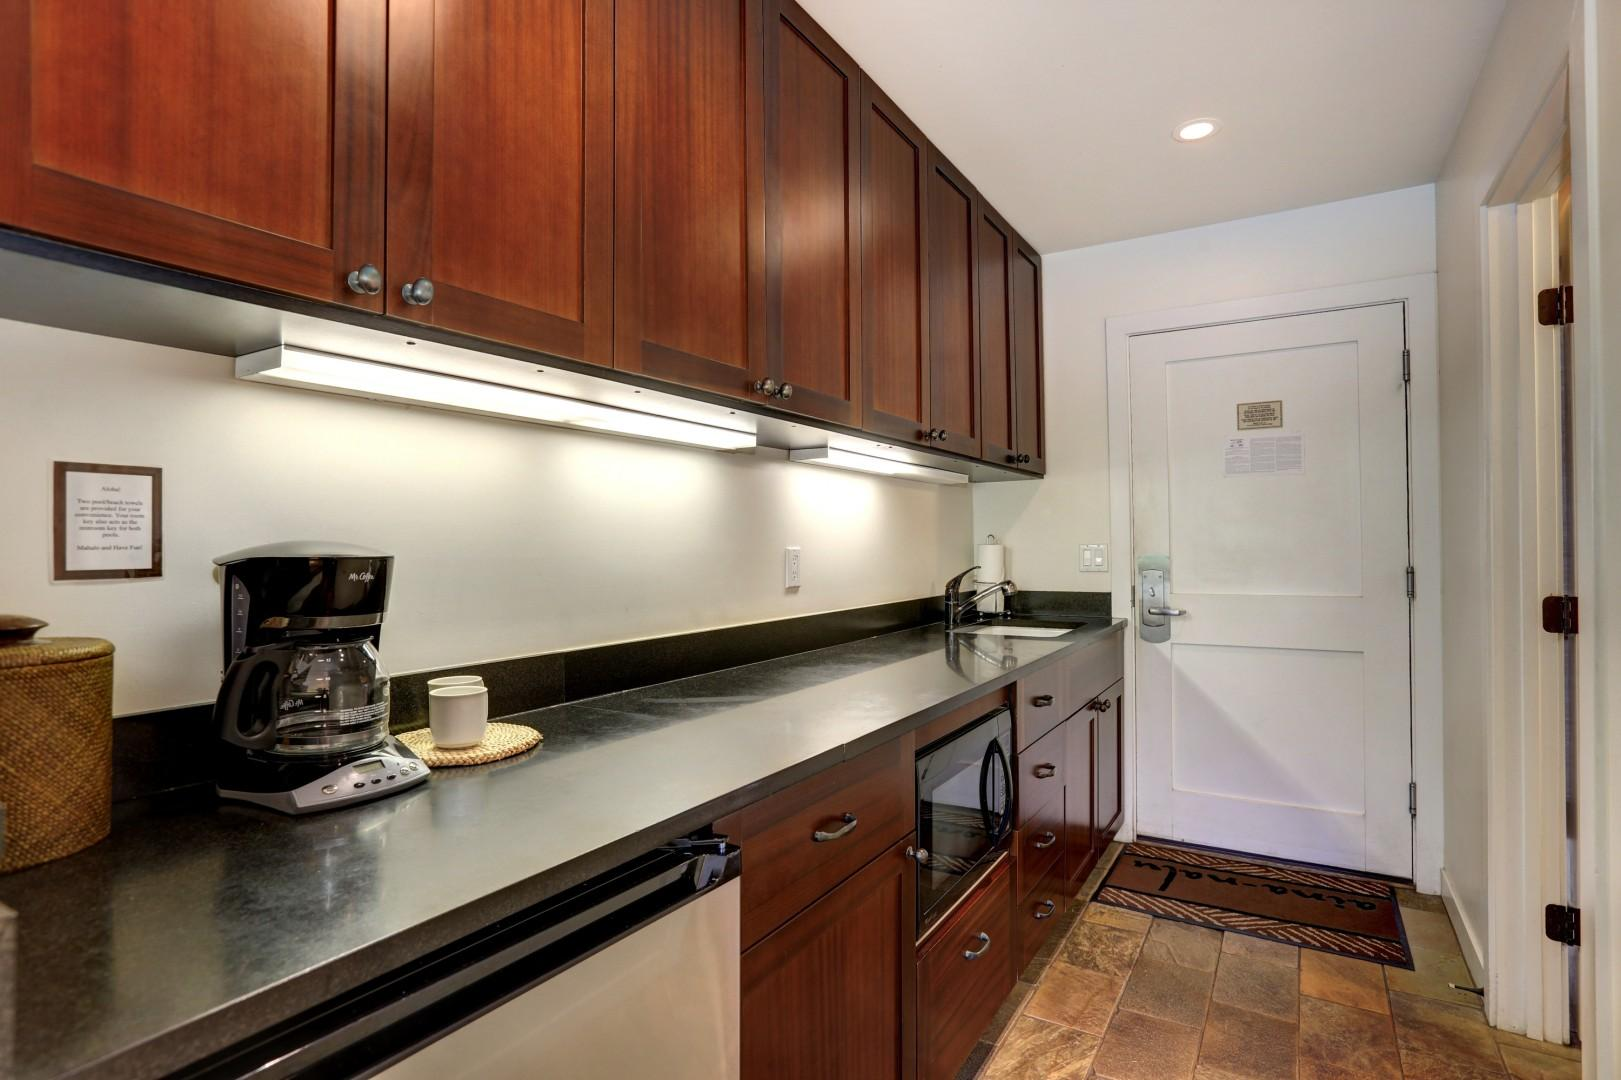 The kitchenette includes a mini refrigerator, a microwave, a coffee maker, a toaster, and a sink.